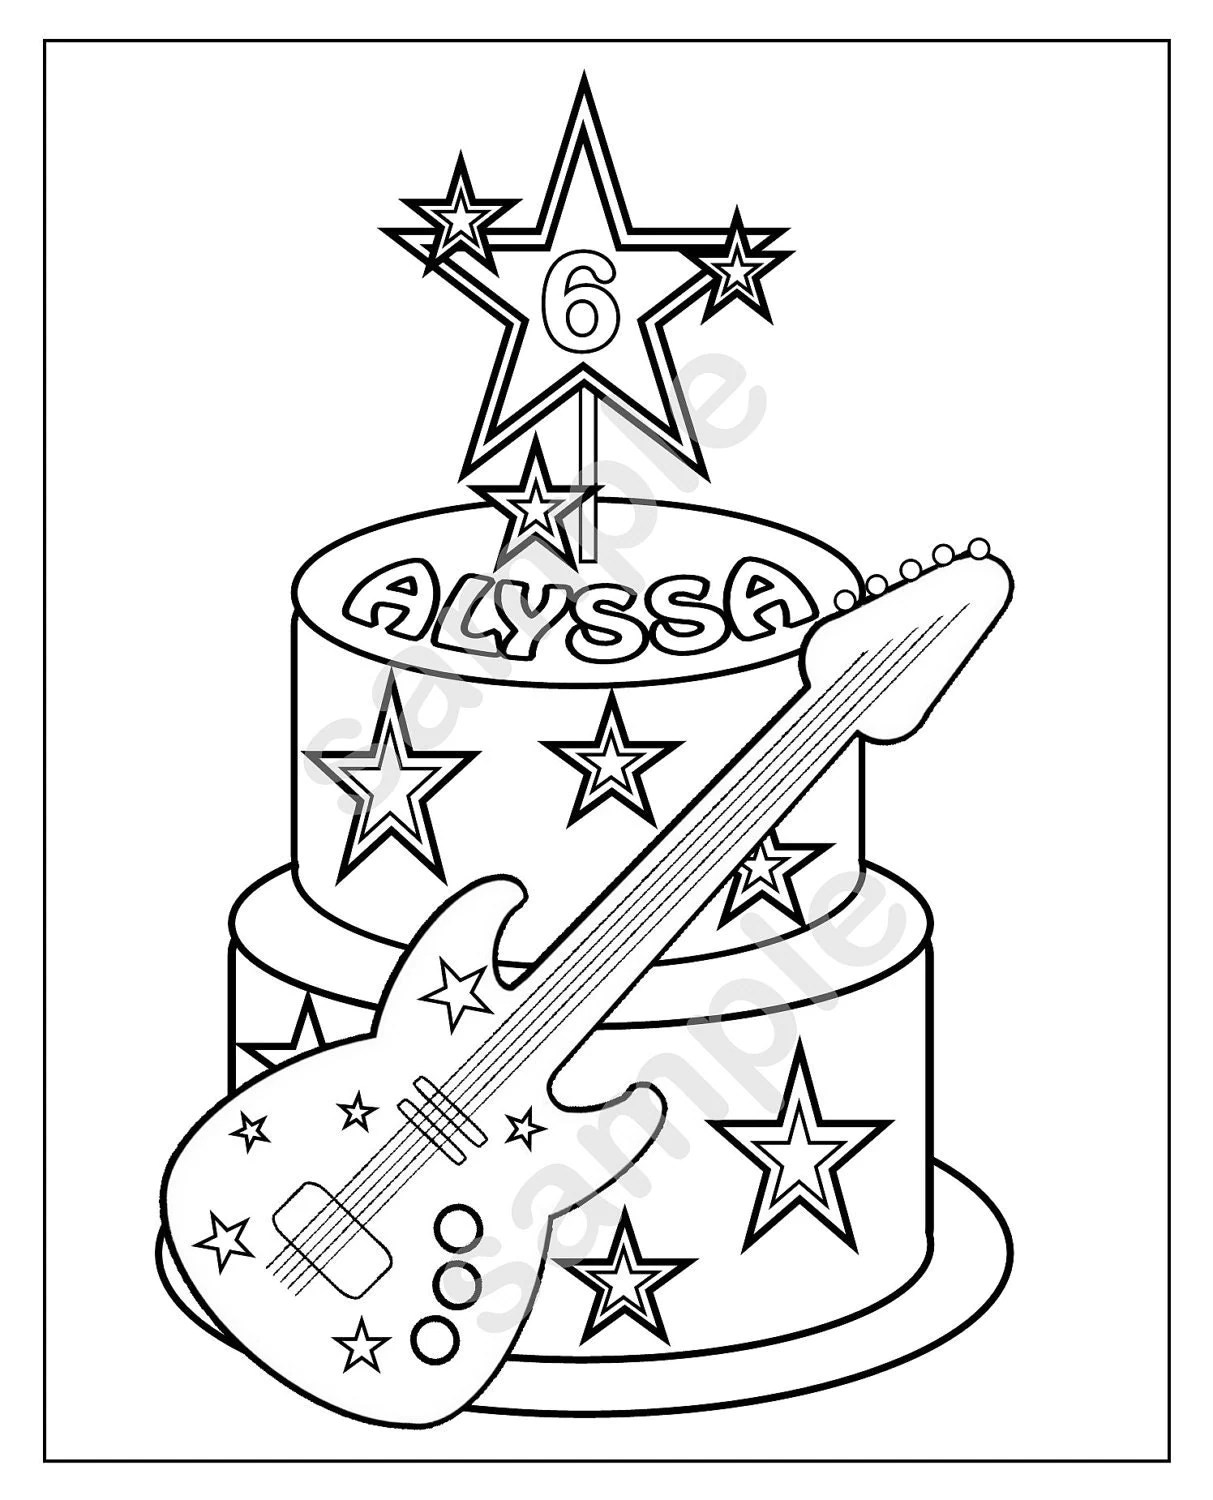 Personalized Printable Rockstar Cake Birthday by